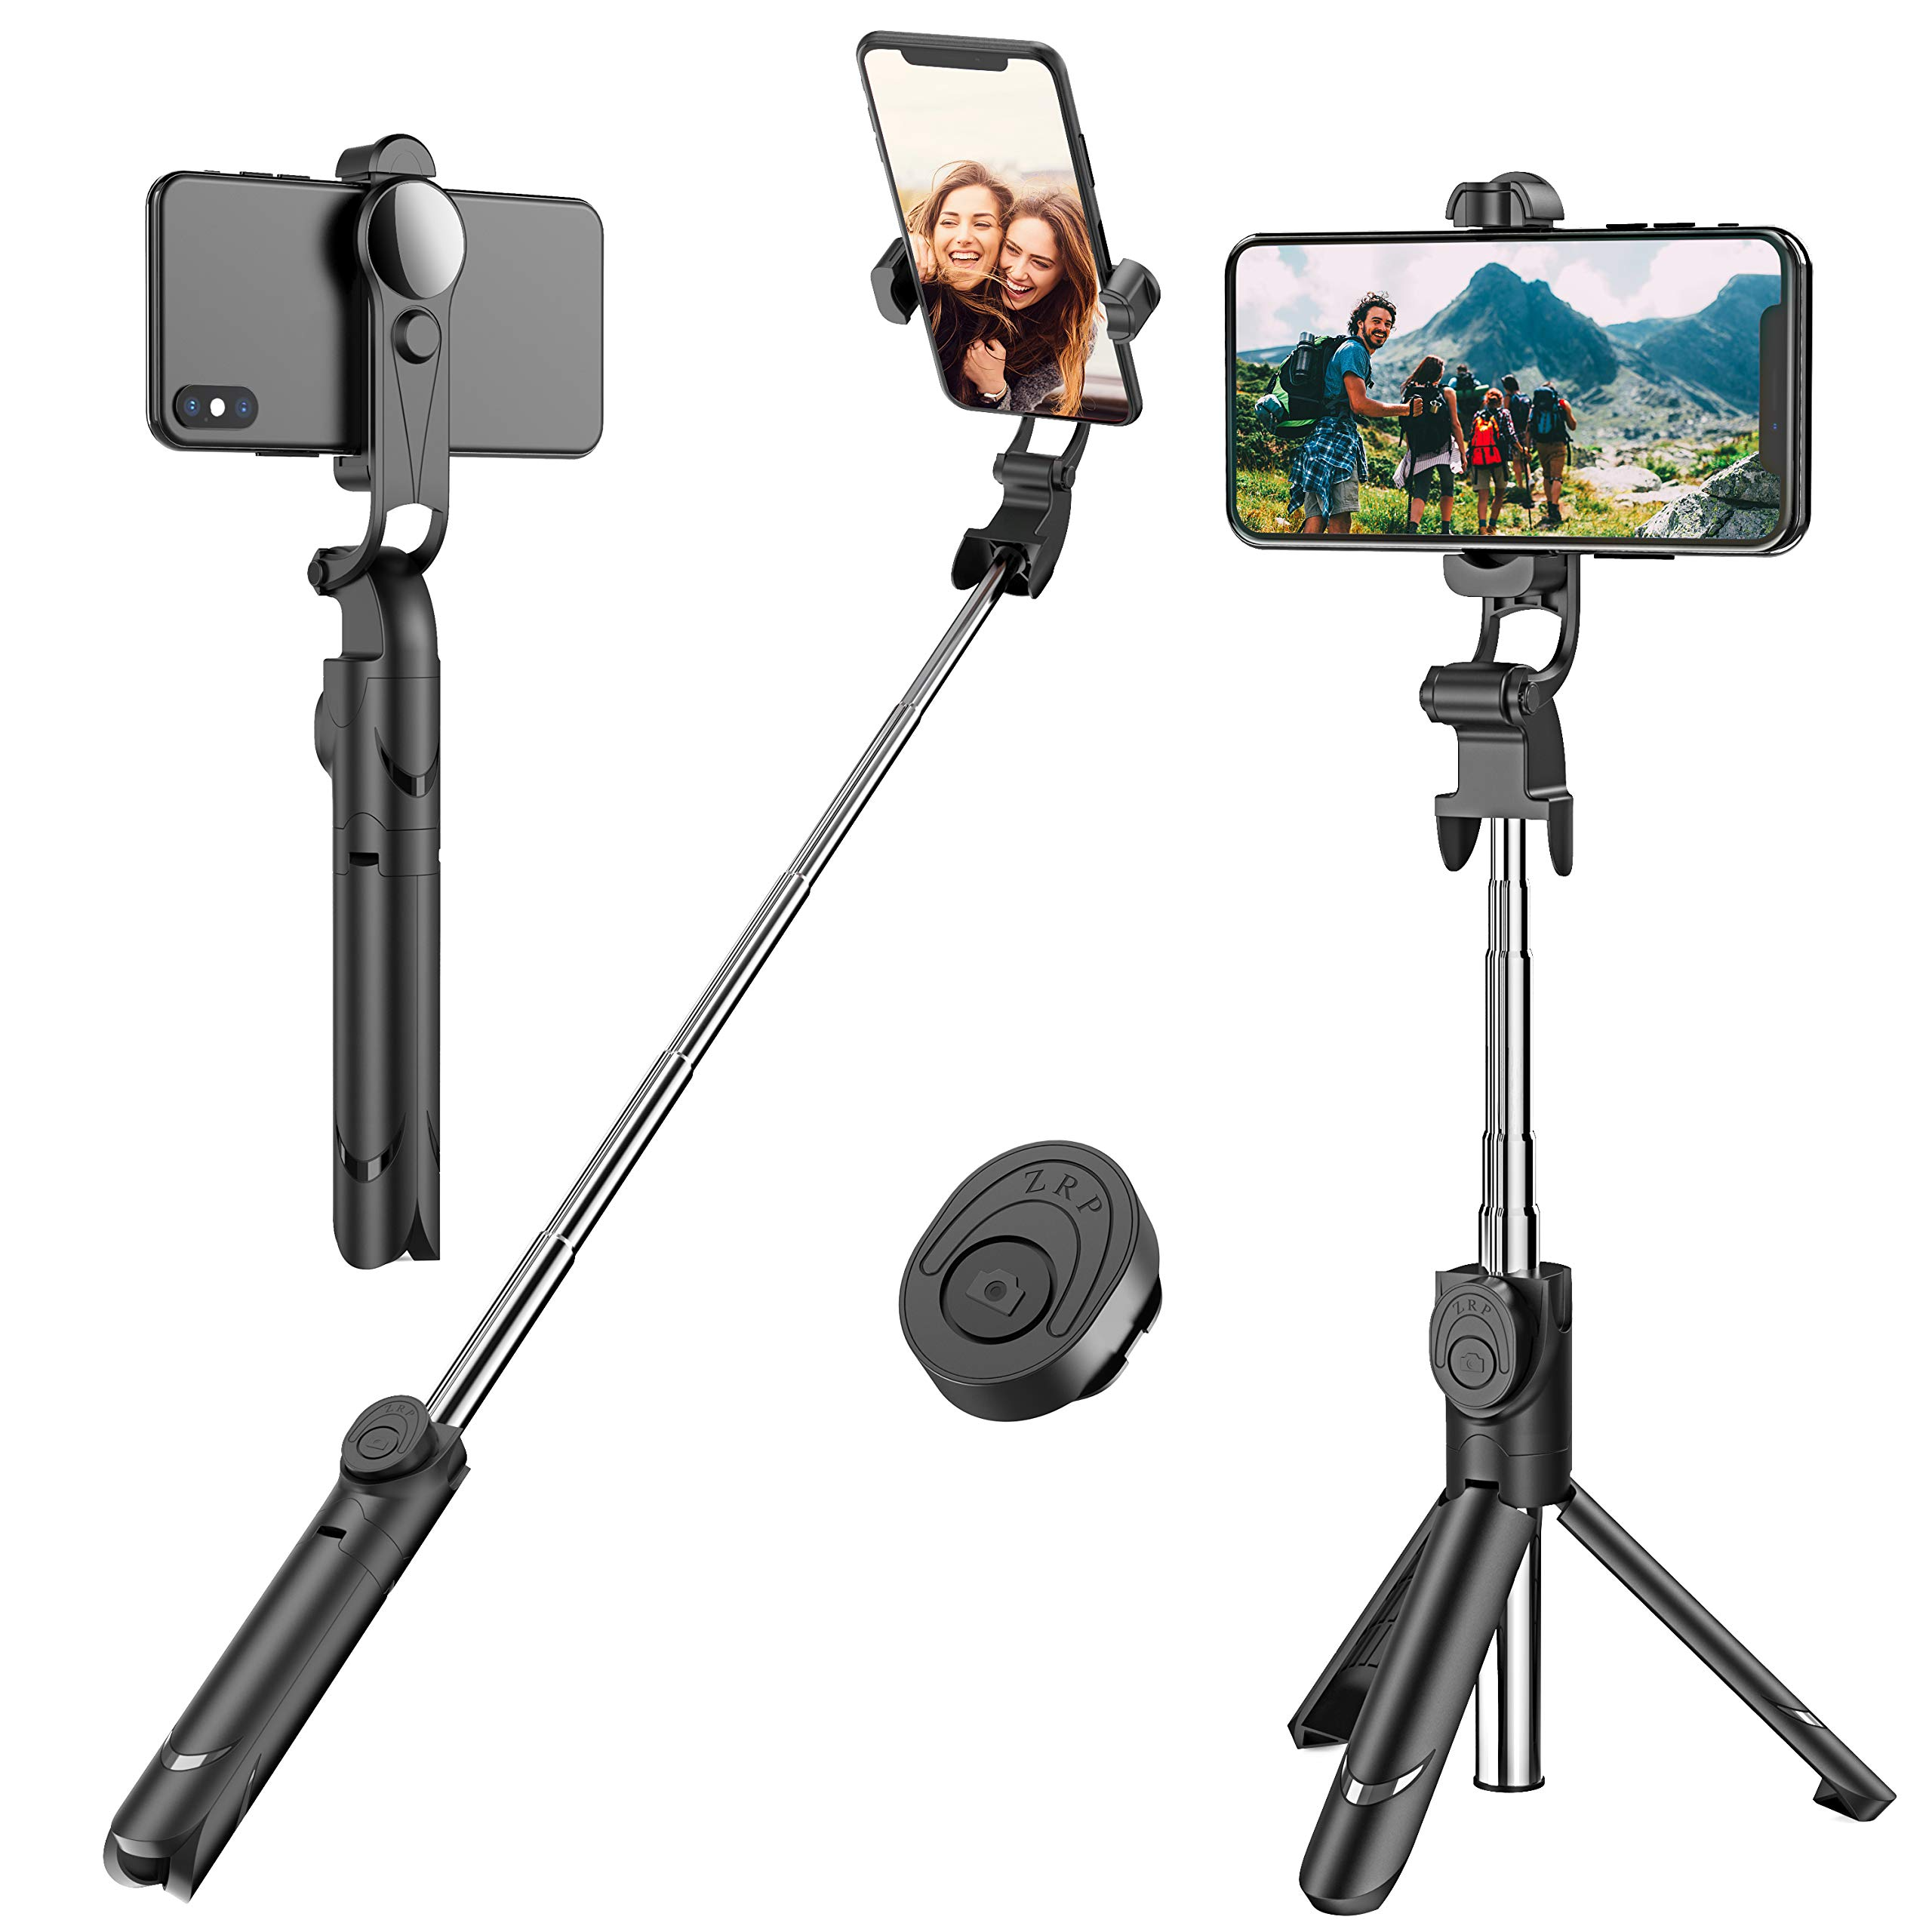 Selfie Stick, Extendable Selfie Stick Tripod with Detachable Wireless Remote and Tripod Stand Selfie Stick for iPhone X/iPhone 8/8 Plus/iPhone 7/7 Plus, Galaxy S9/S9 Plus/S8/S8 Plus/Note8,Huawei,More by Erligpowht